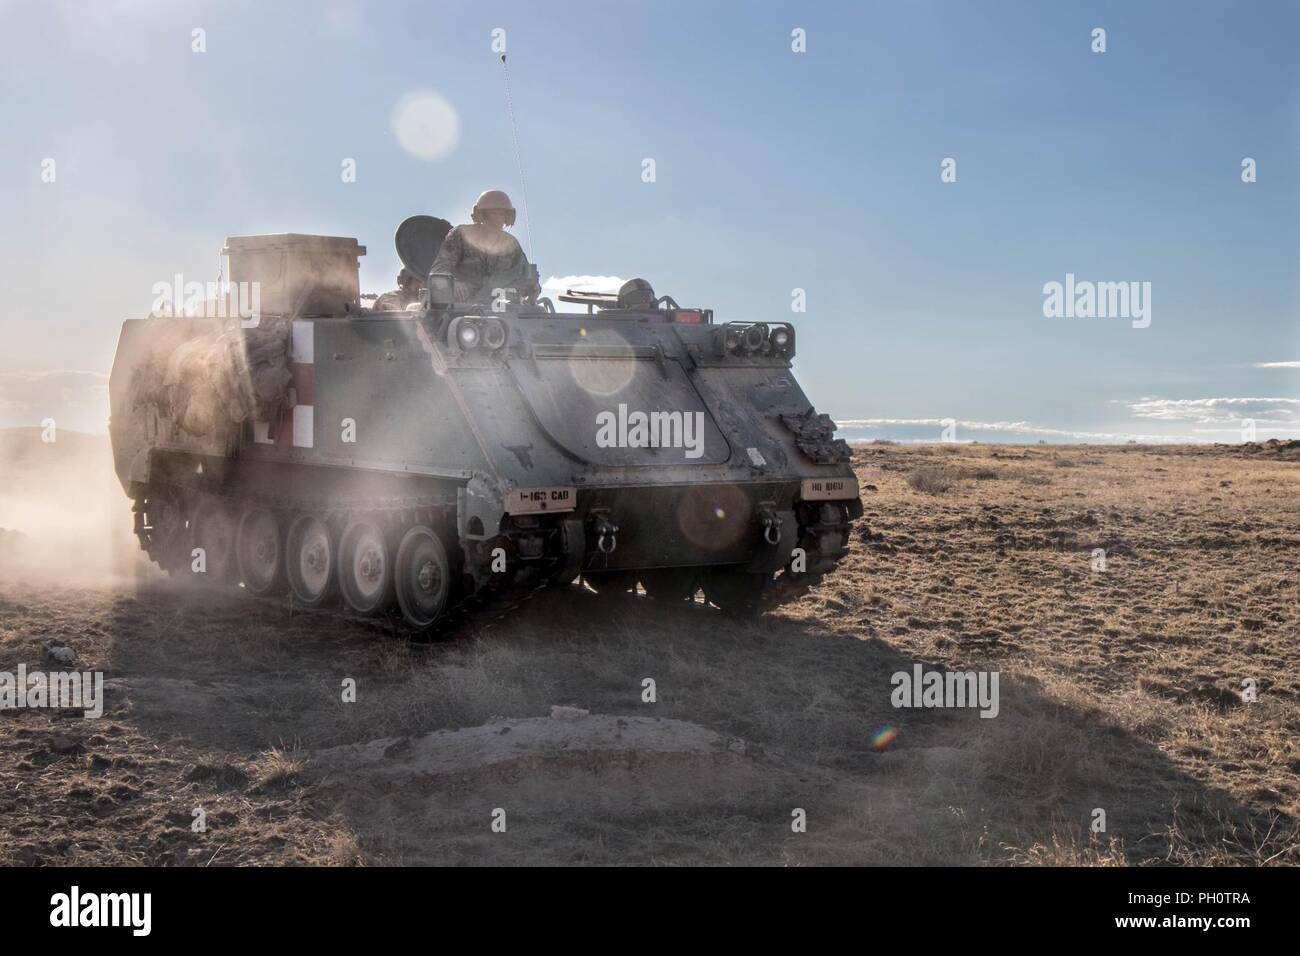 An M113 armored personnel carrier returns to the field from